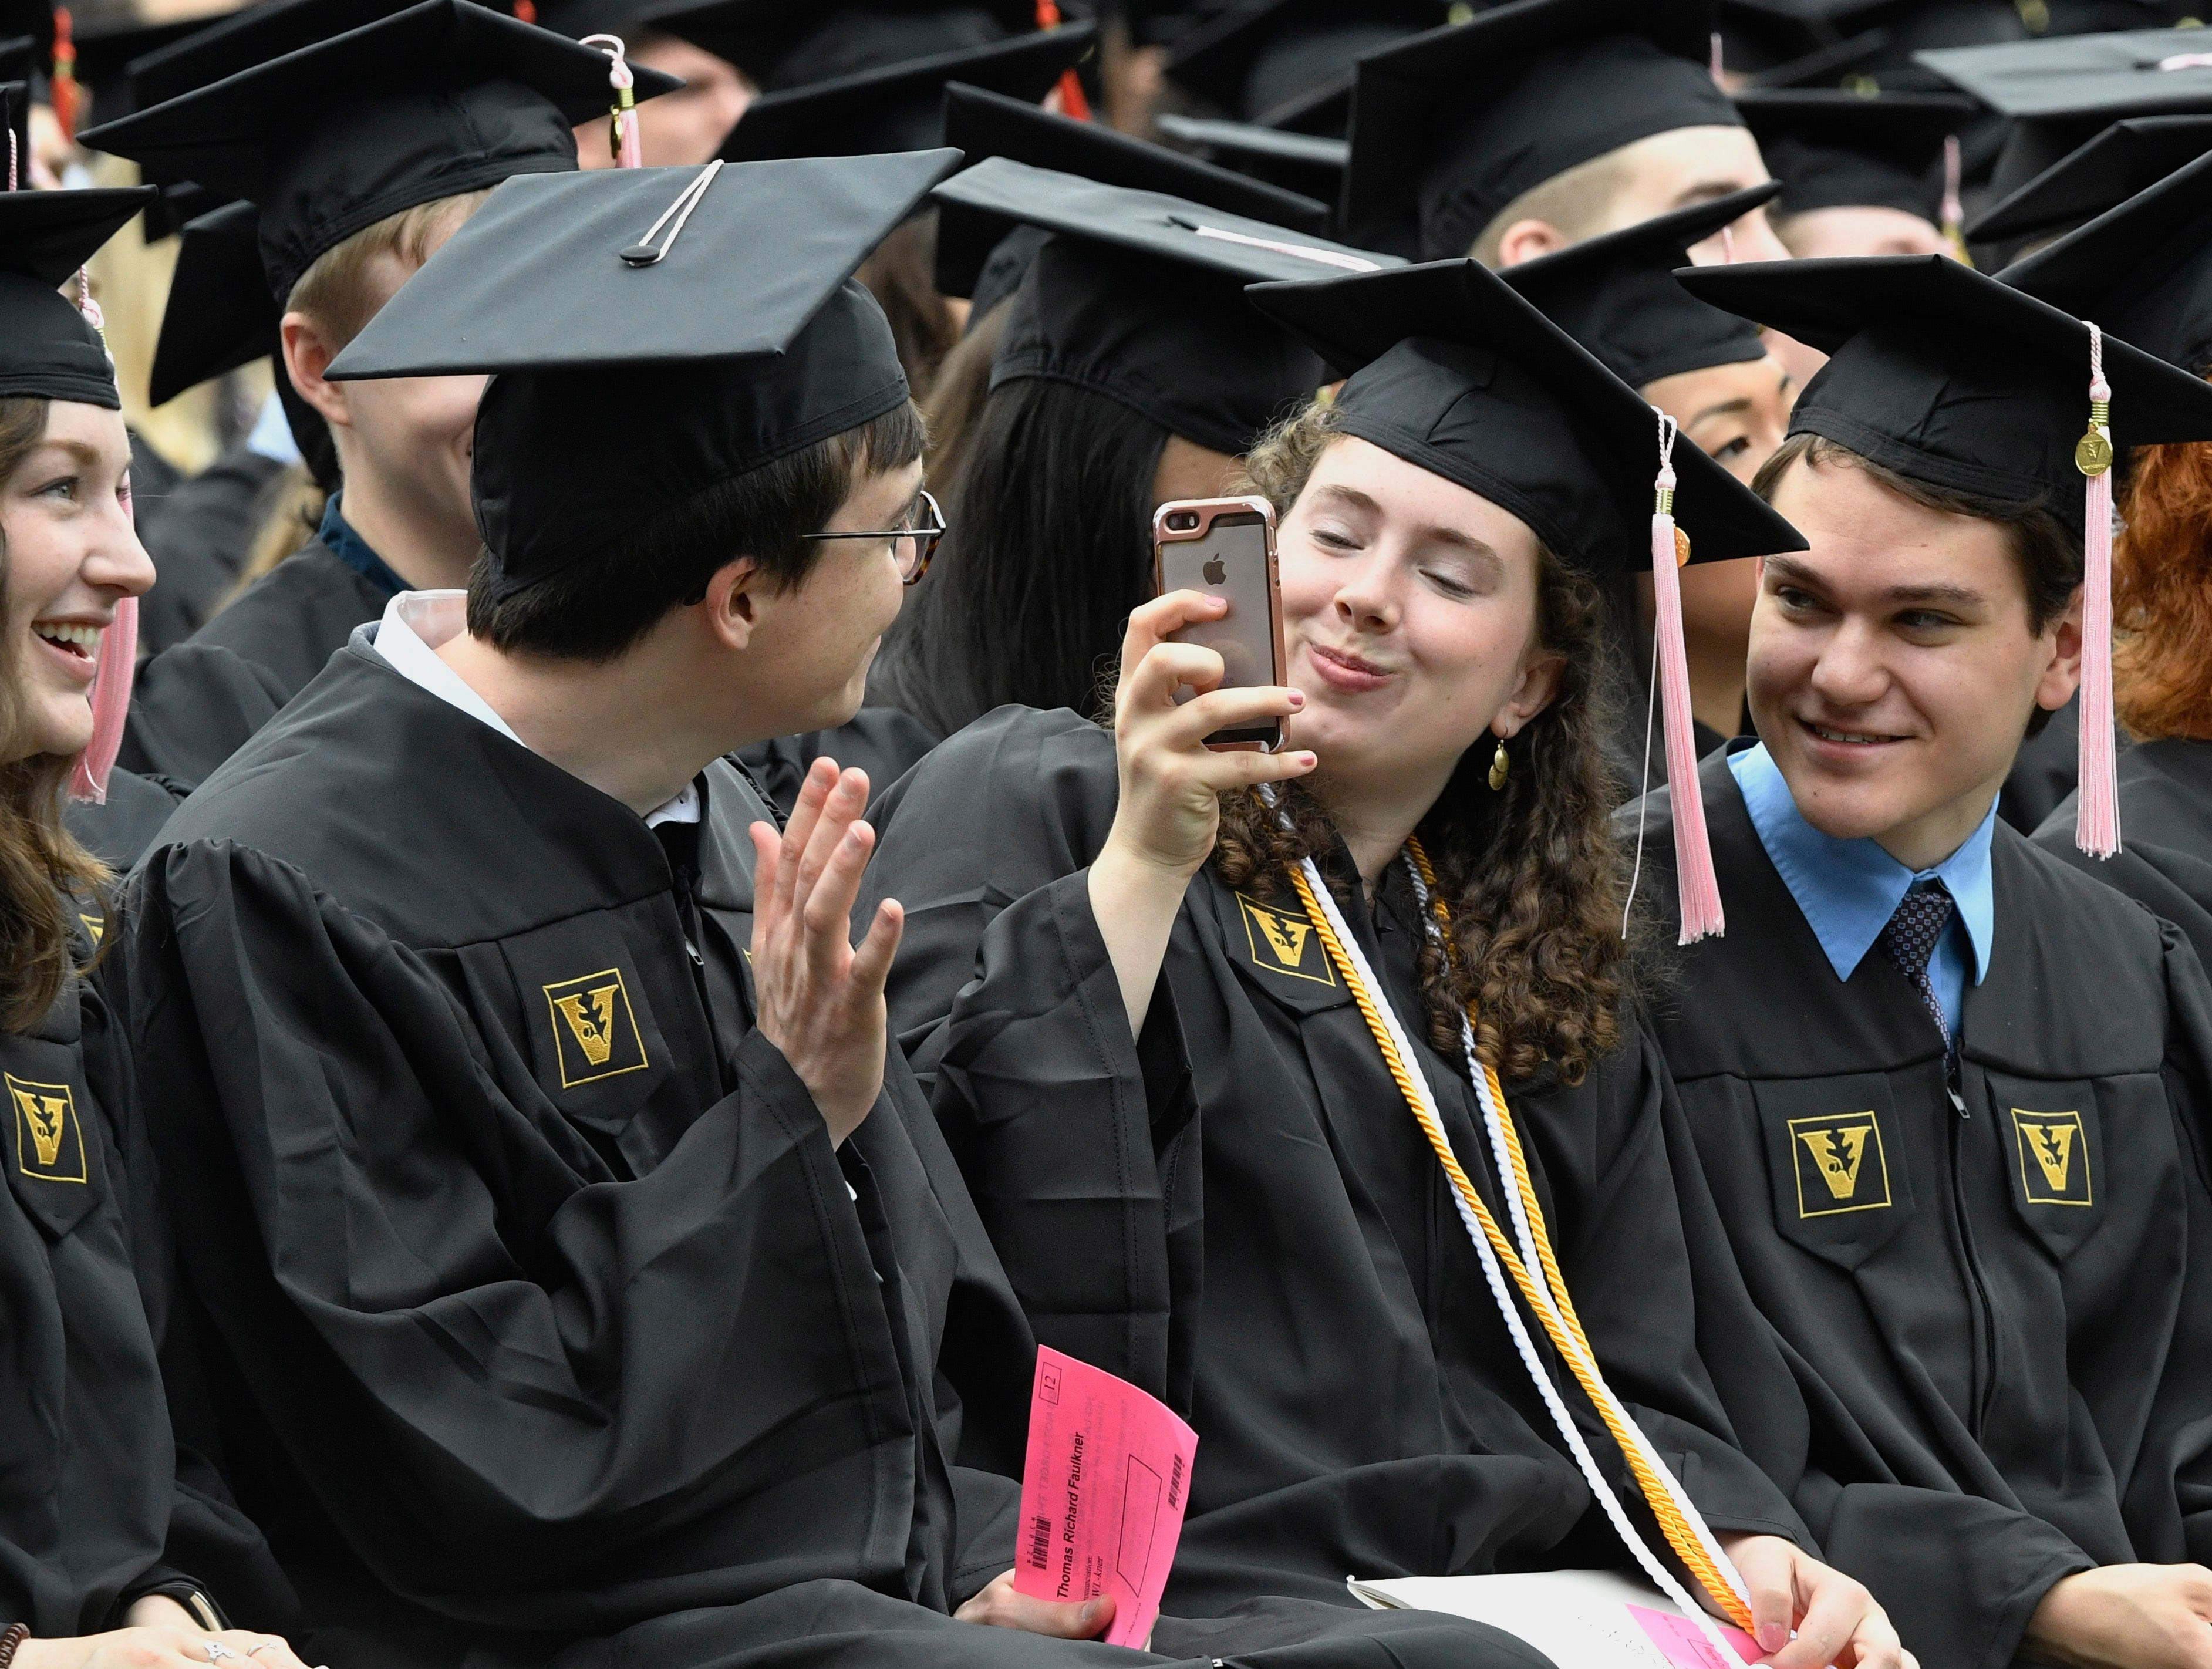 Graduates clown around taking photos before the start of Vanderbilt University graduation Friday, May 10, 2019, in Nashville, Tenn.